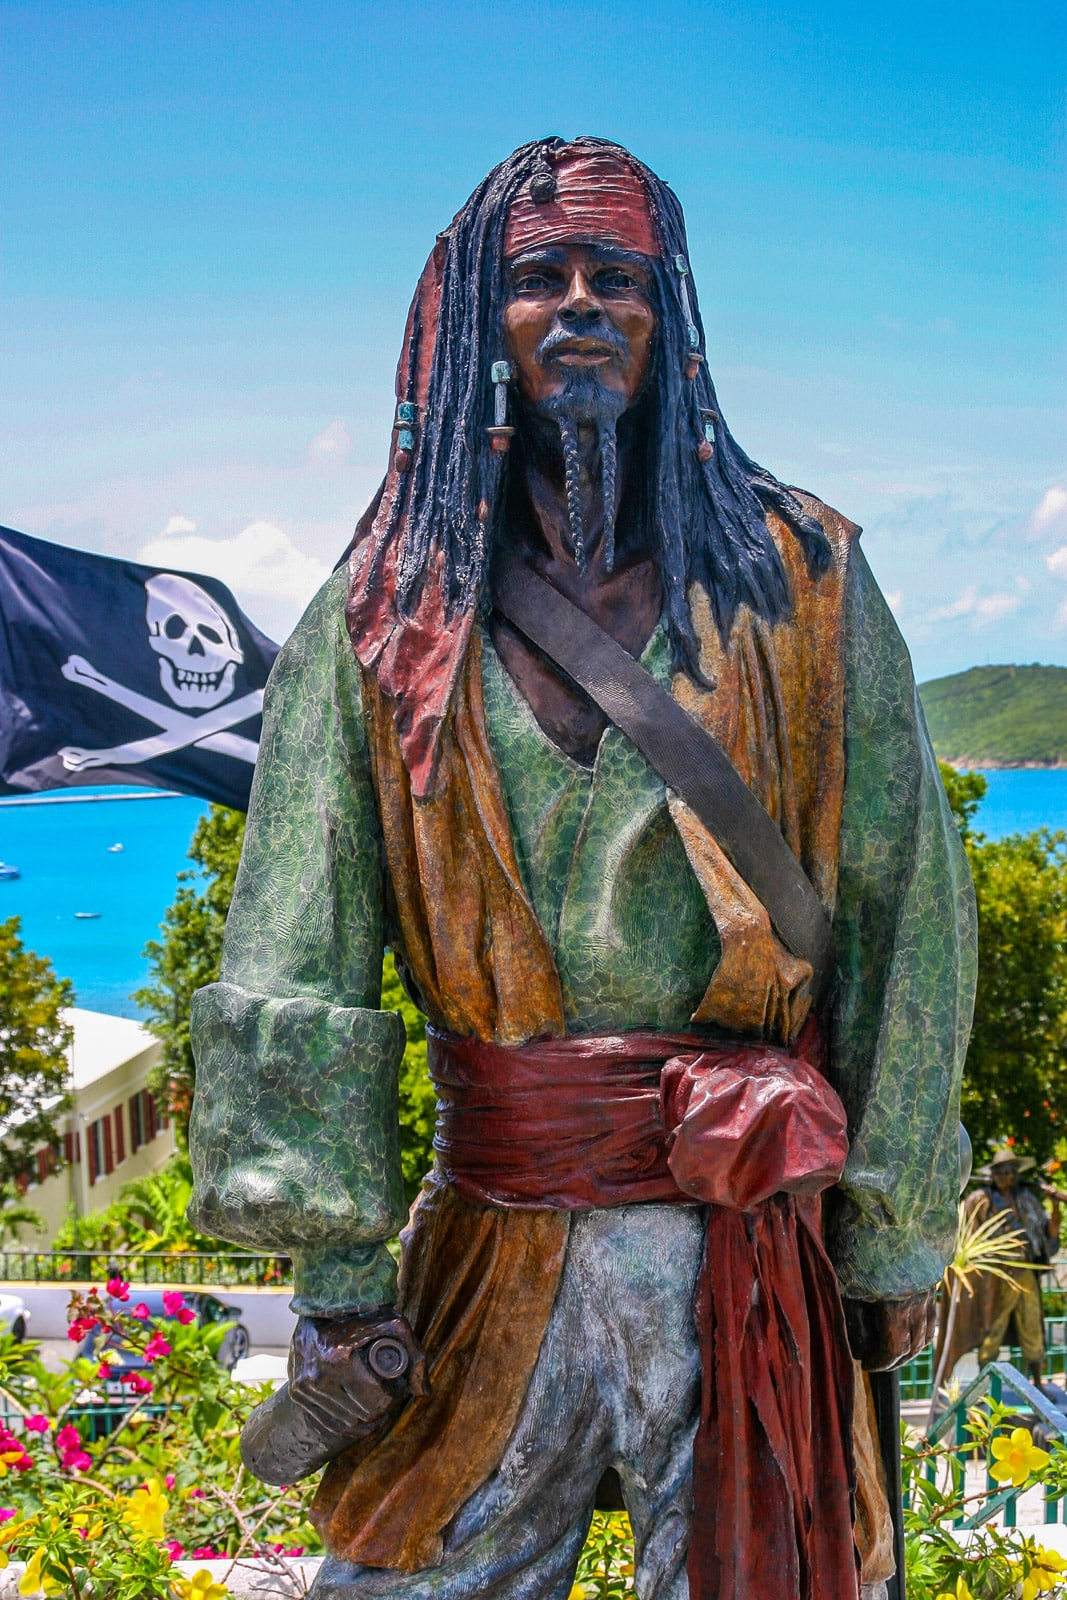 blackbeard research paper Look through our sample history paper if you like one research paper samples 29 research paper writing 19 research proposal writing 2 here i consider mentioning the story of the famous blackbeard - edward teach.